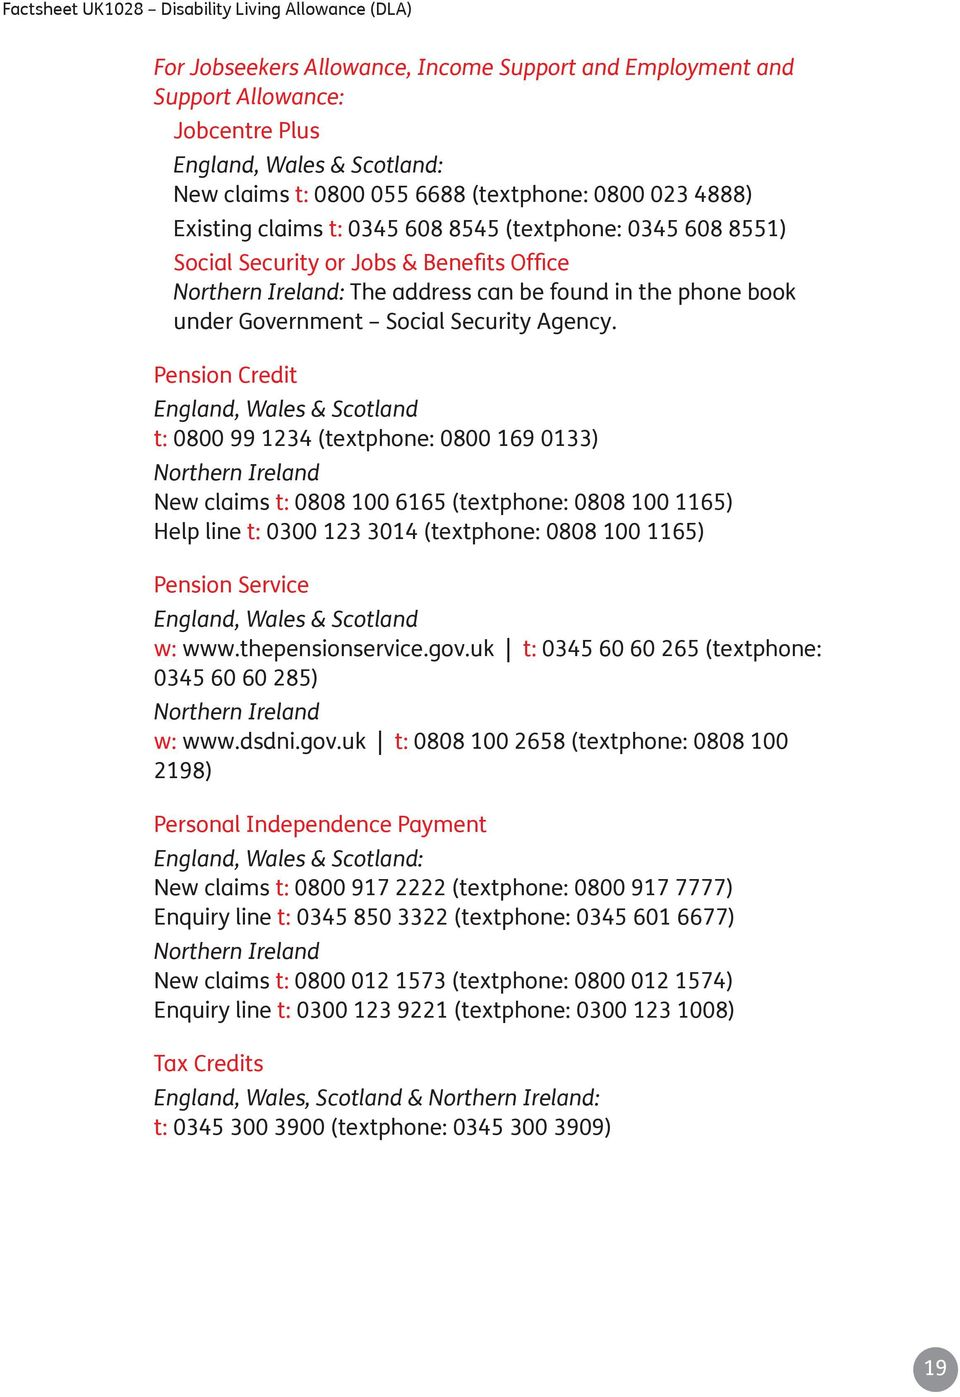 Pension Credit England, Wales & Scotland t: 0800 99 1234 (textphone: 0800 169 0133) Northern Ireland New claims t: 0808 100 6165 (textphone: 0808 100 1165) Help line t: 0300 123 3014 (textphone: 0808